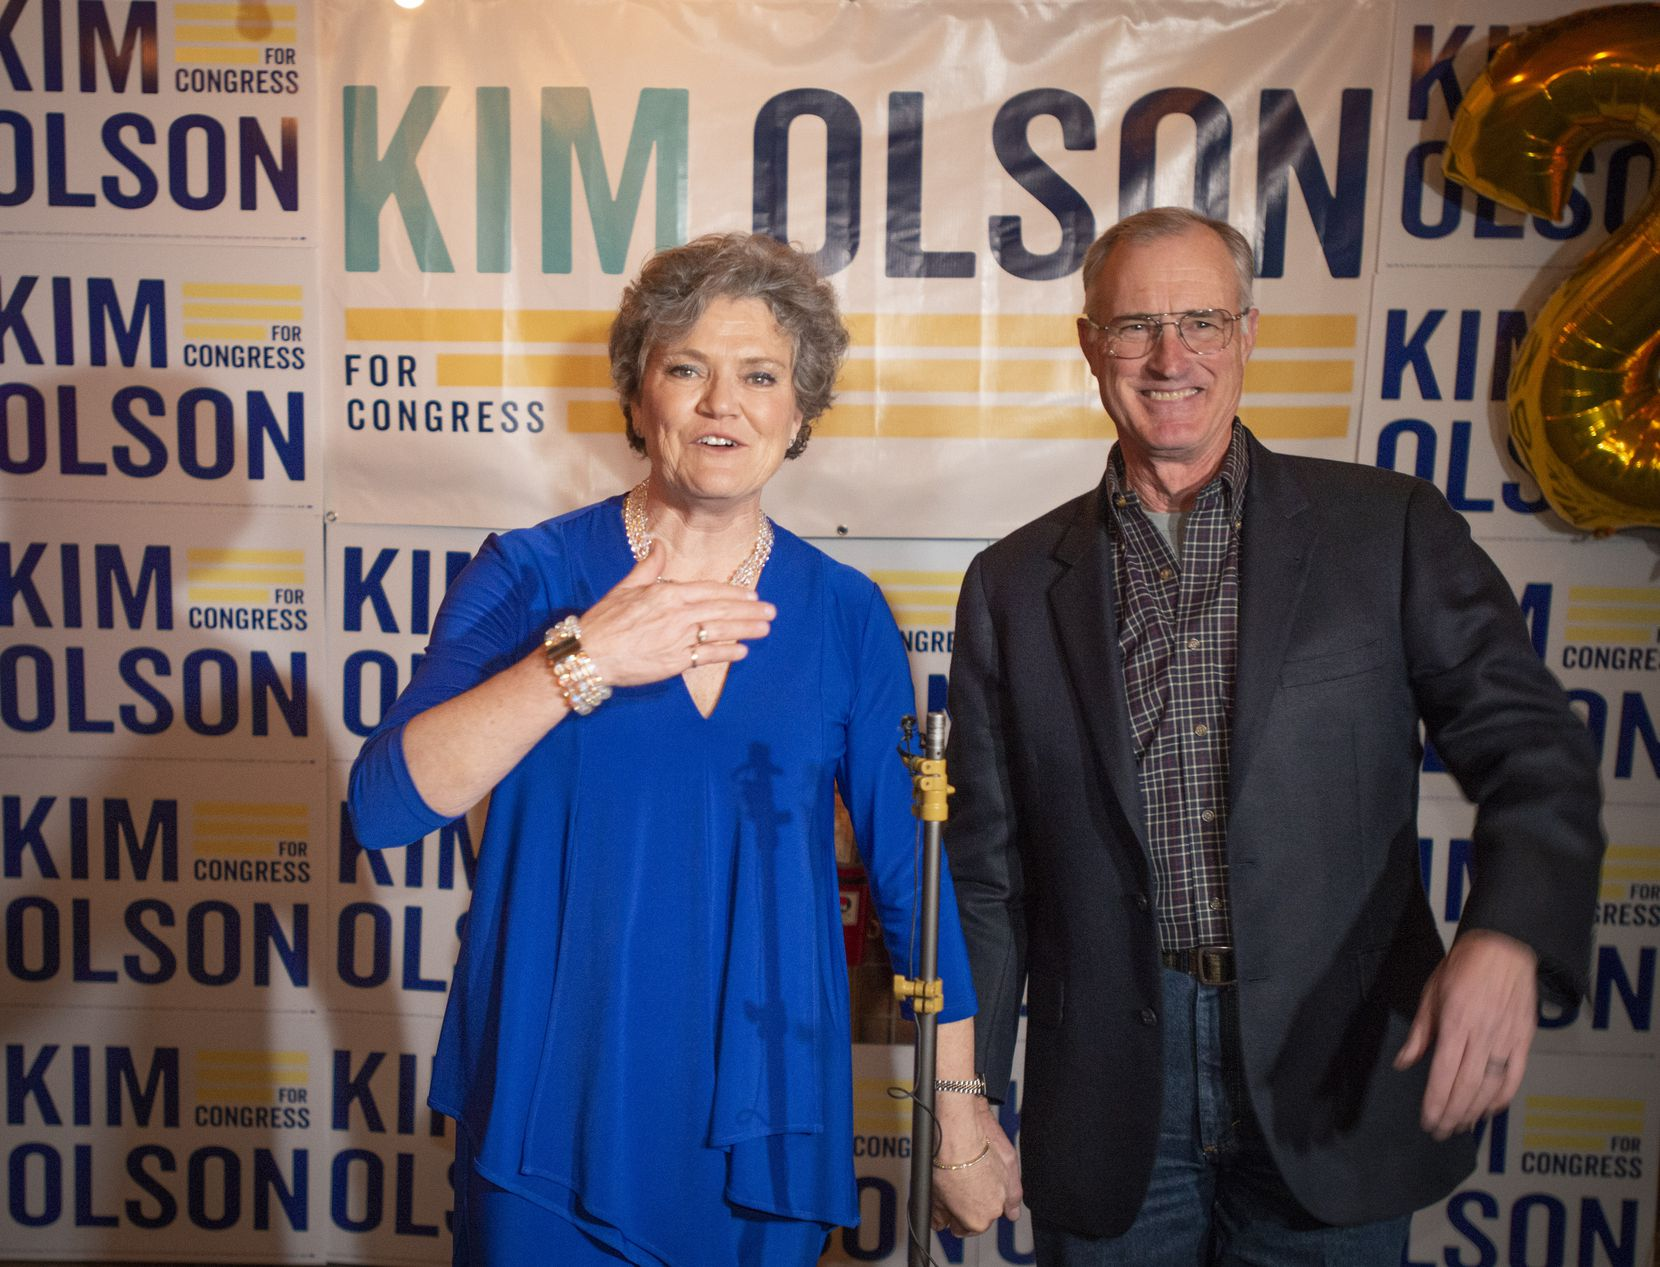 At her watch party at Boomer Jack's in Bedford, Texas Kim Olson with husband Kent Olson thanks her supporters and volunteers for their work on her campaign to be the Democratic candidate in Texas' 24th Congressional District . (Robert W. Hart/Special Contributor)